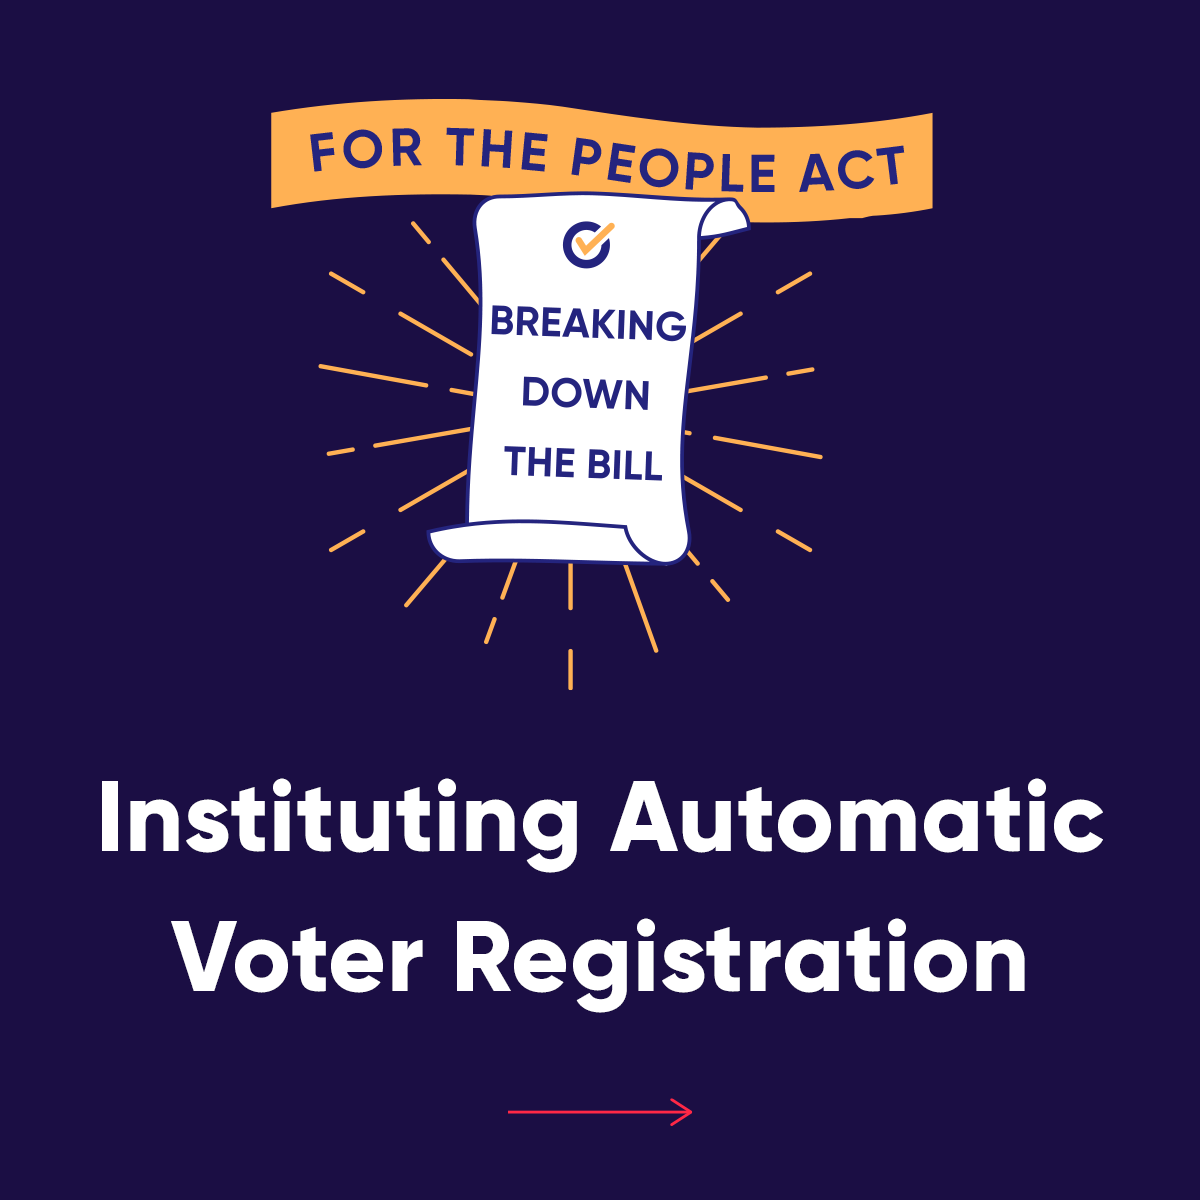 We're breaking down what automatic voter registration is and how this change would register 50 million new lifelong voters.   Do you want to see this change made in your state? Call your Members of Congress and urge them to support the #ForThePeopleAct: